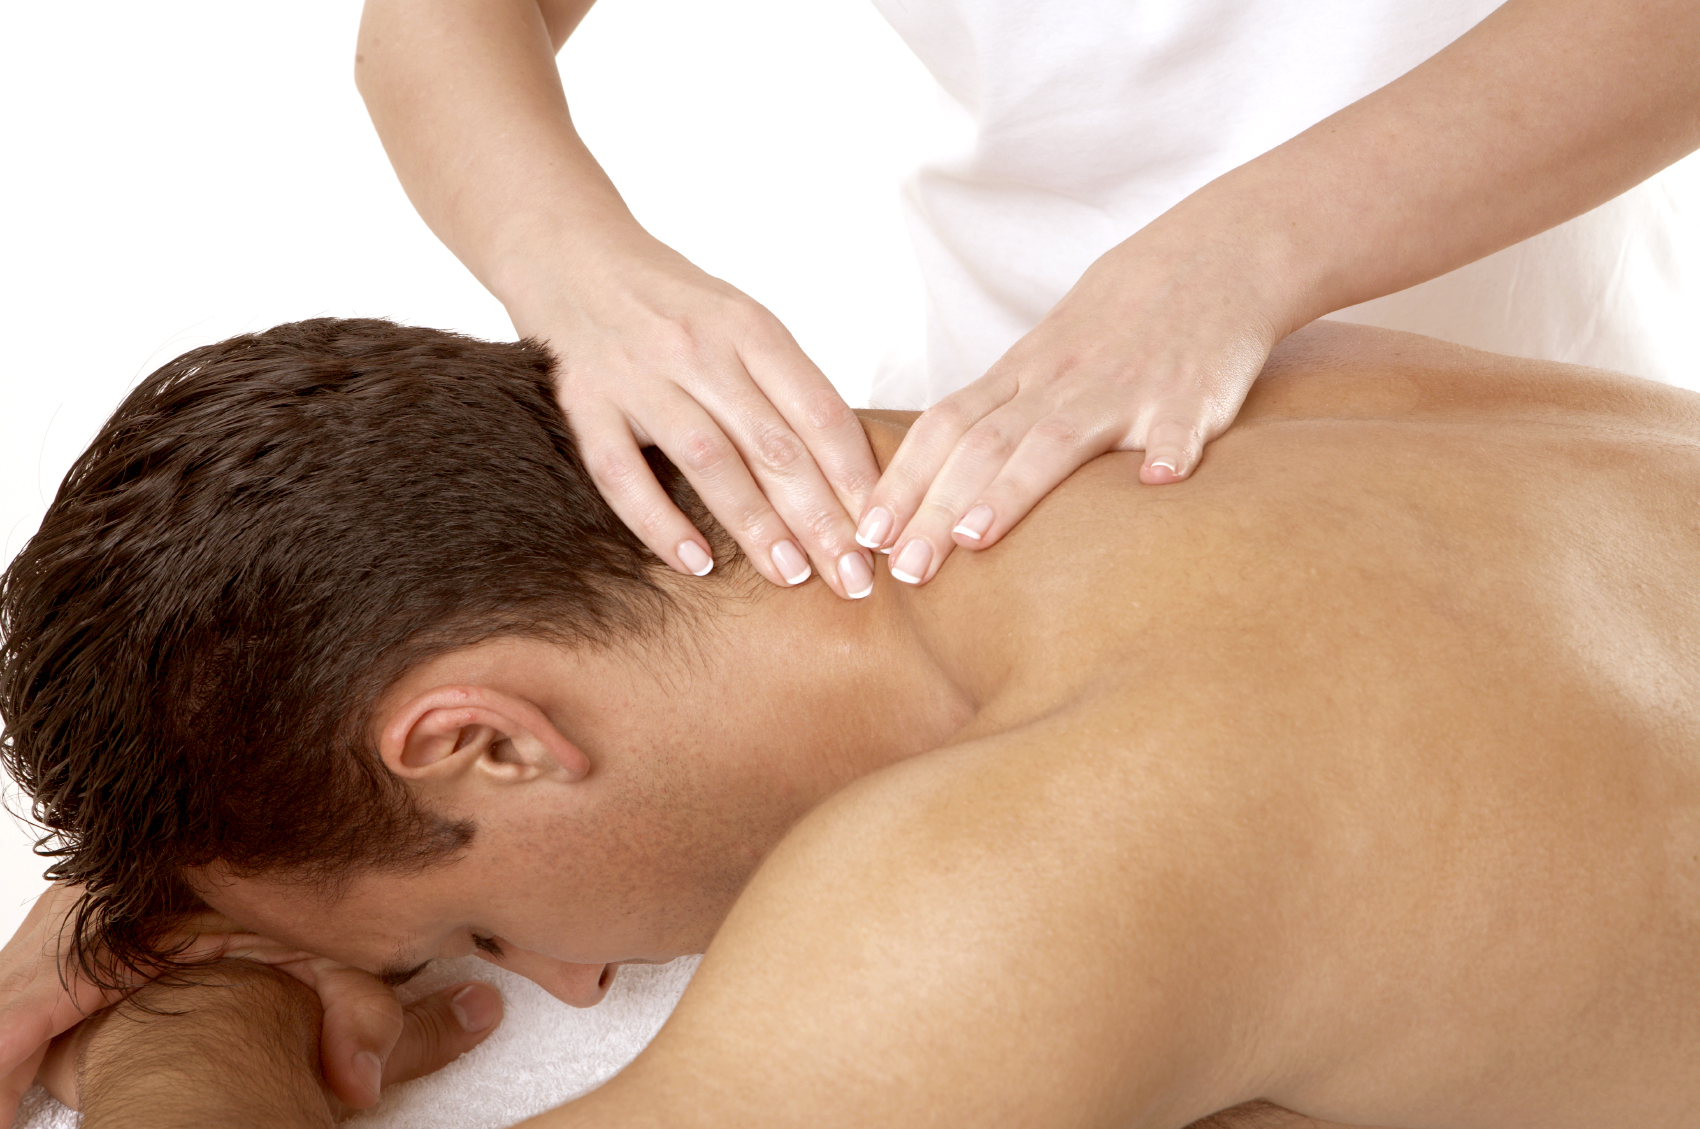 Factors to Consider When Choosing a Chiropractor